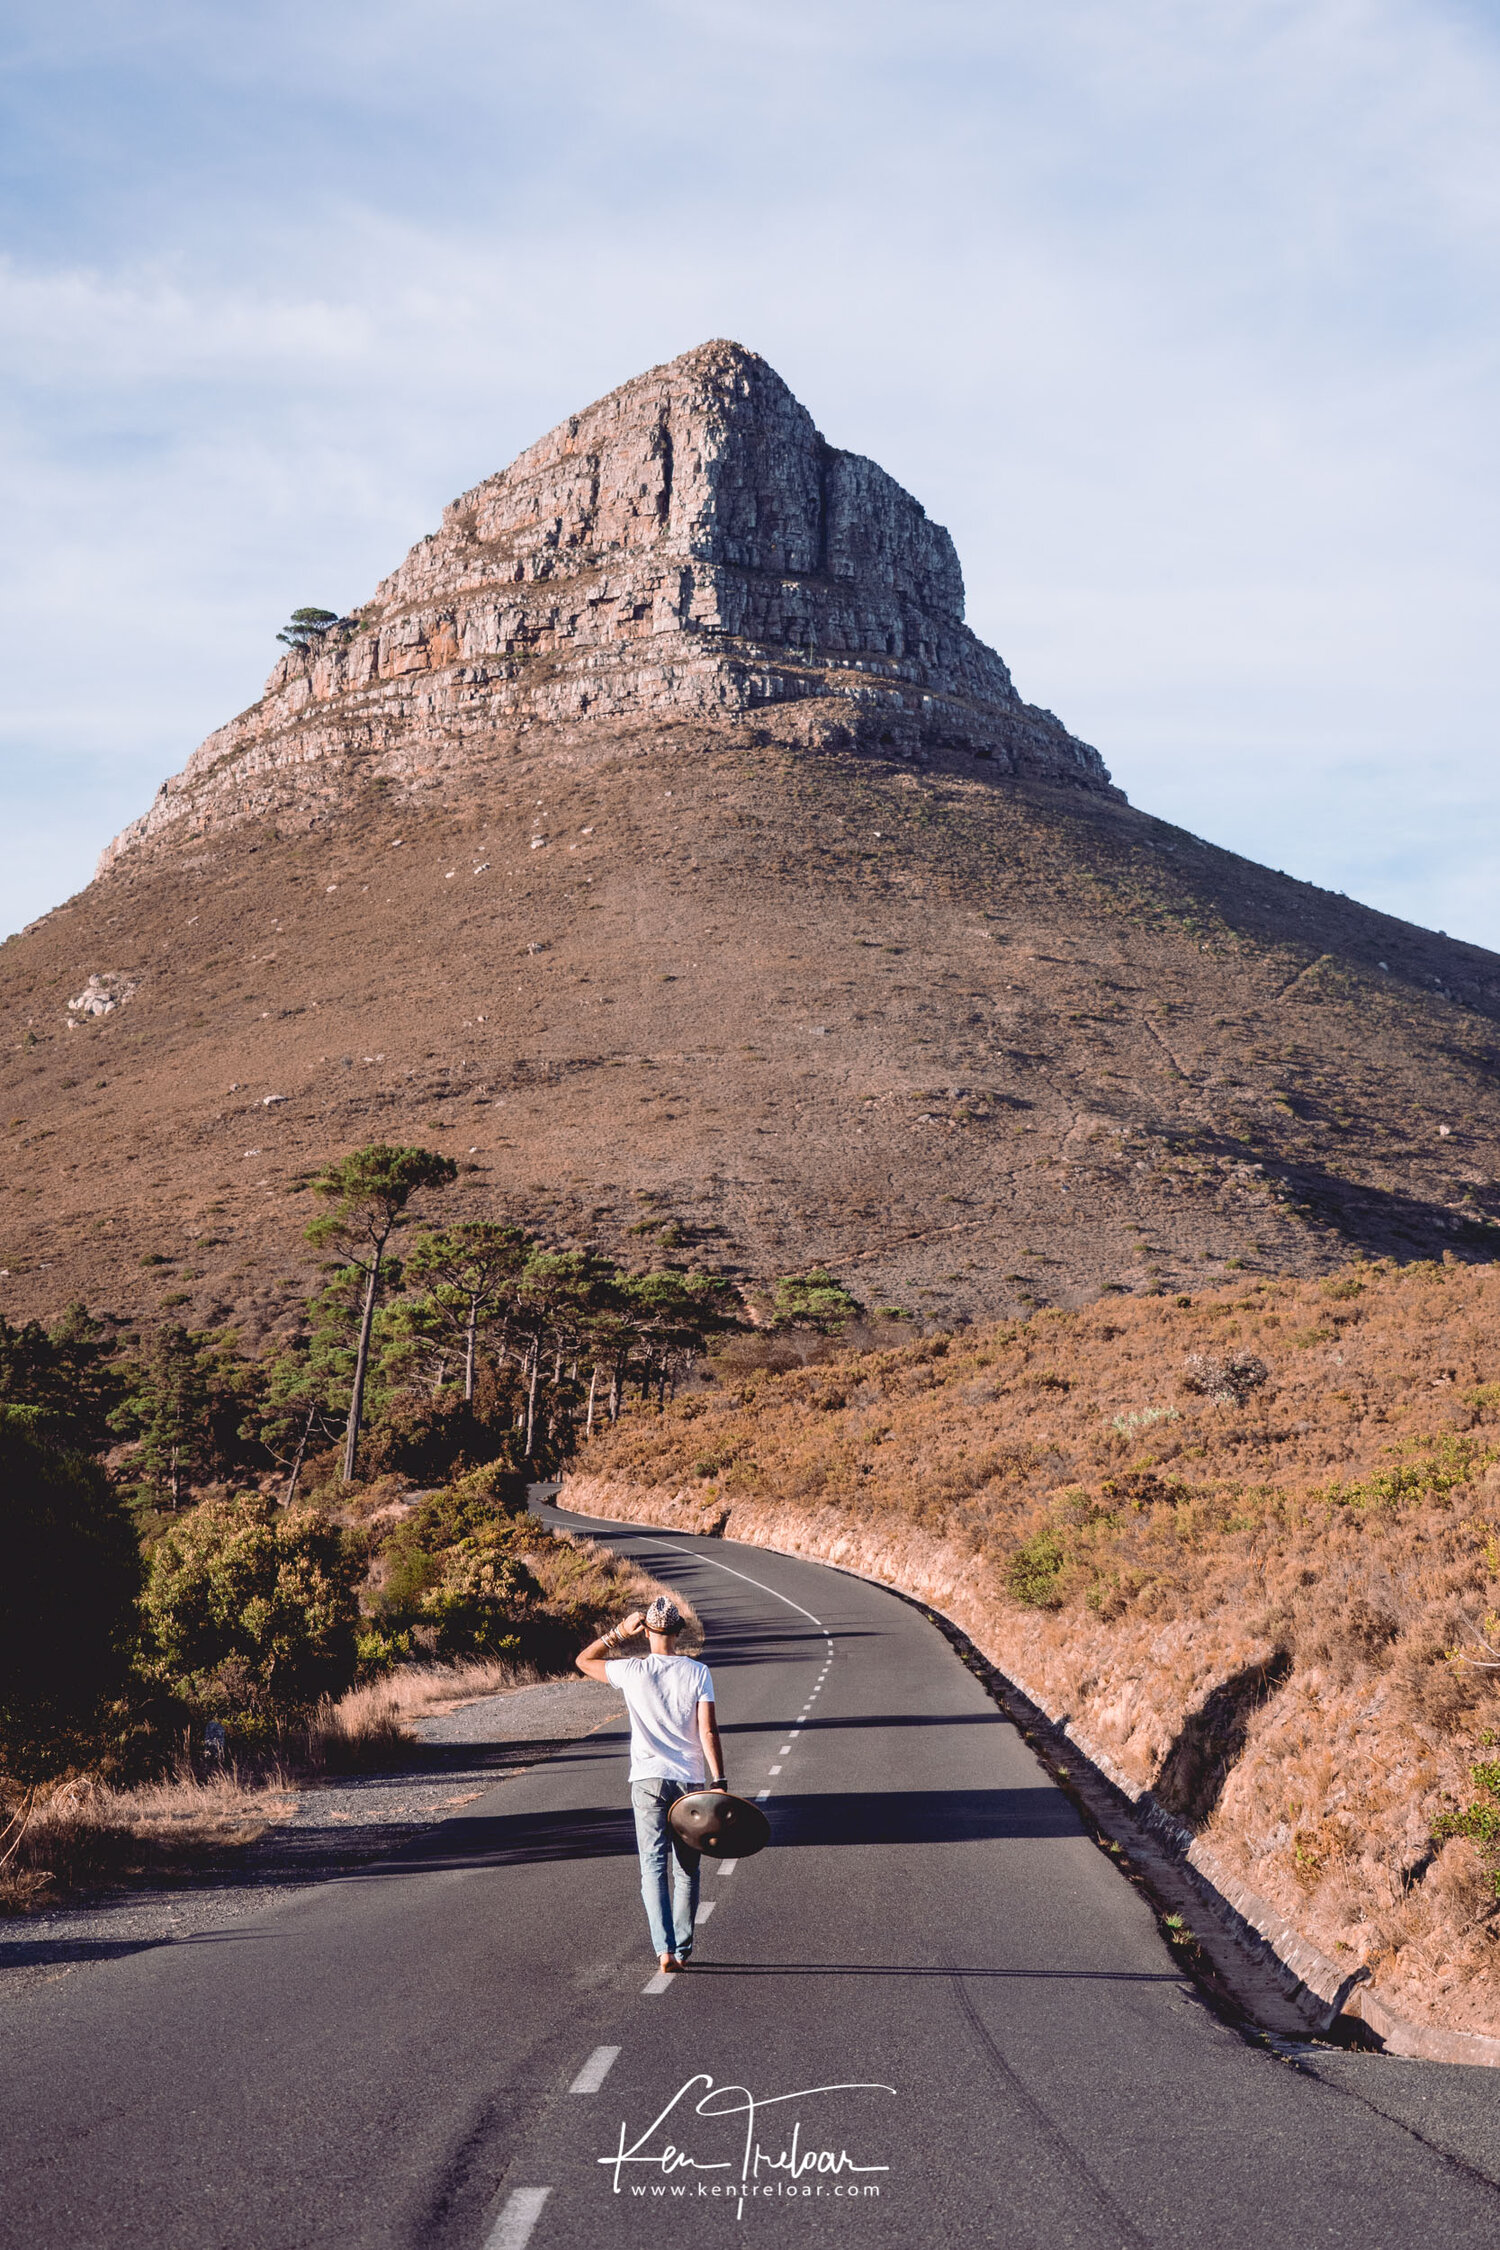 Marco Selvaggio - Signal Hill, Lions head, Table Mountain, Cape Town South Africa - Image by Ken Treloar Photography 2019-3.jpg